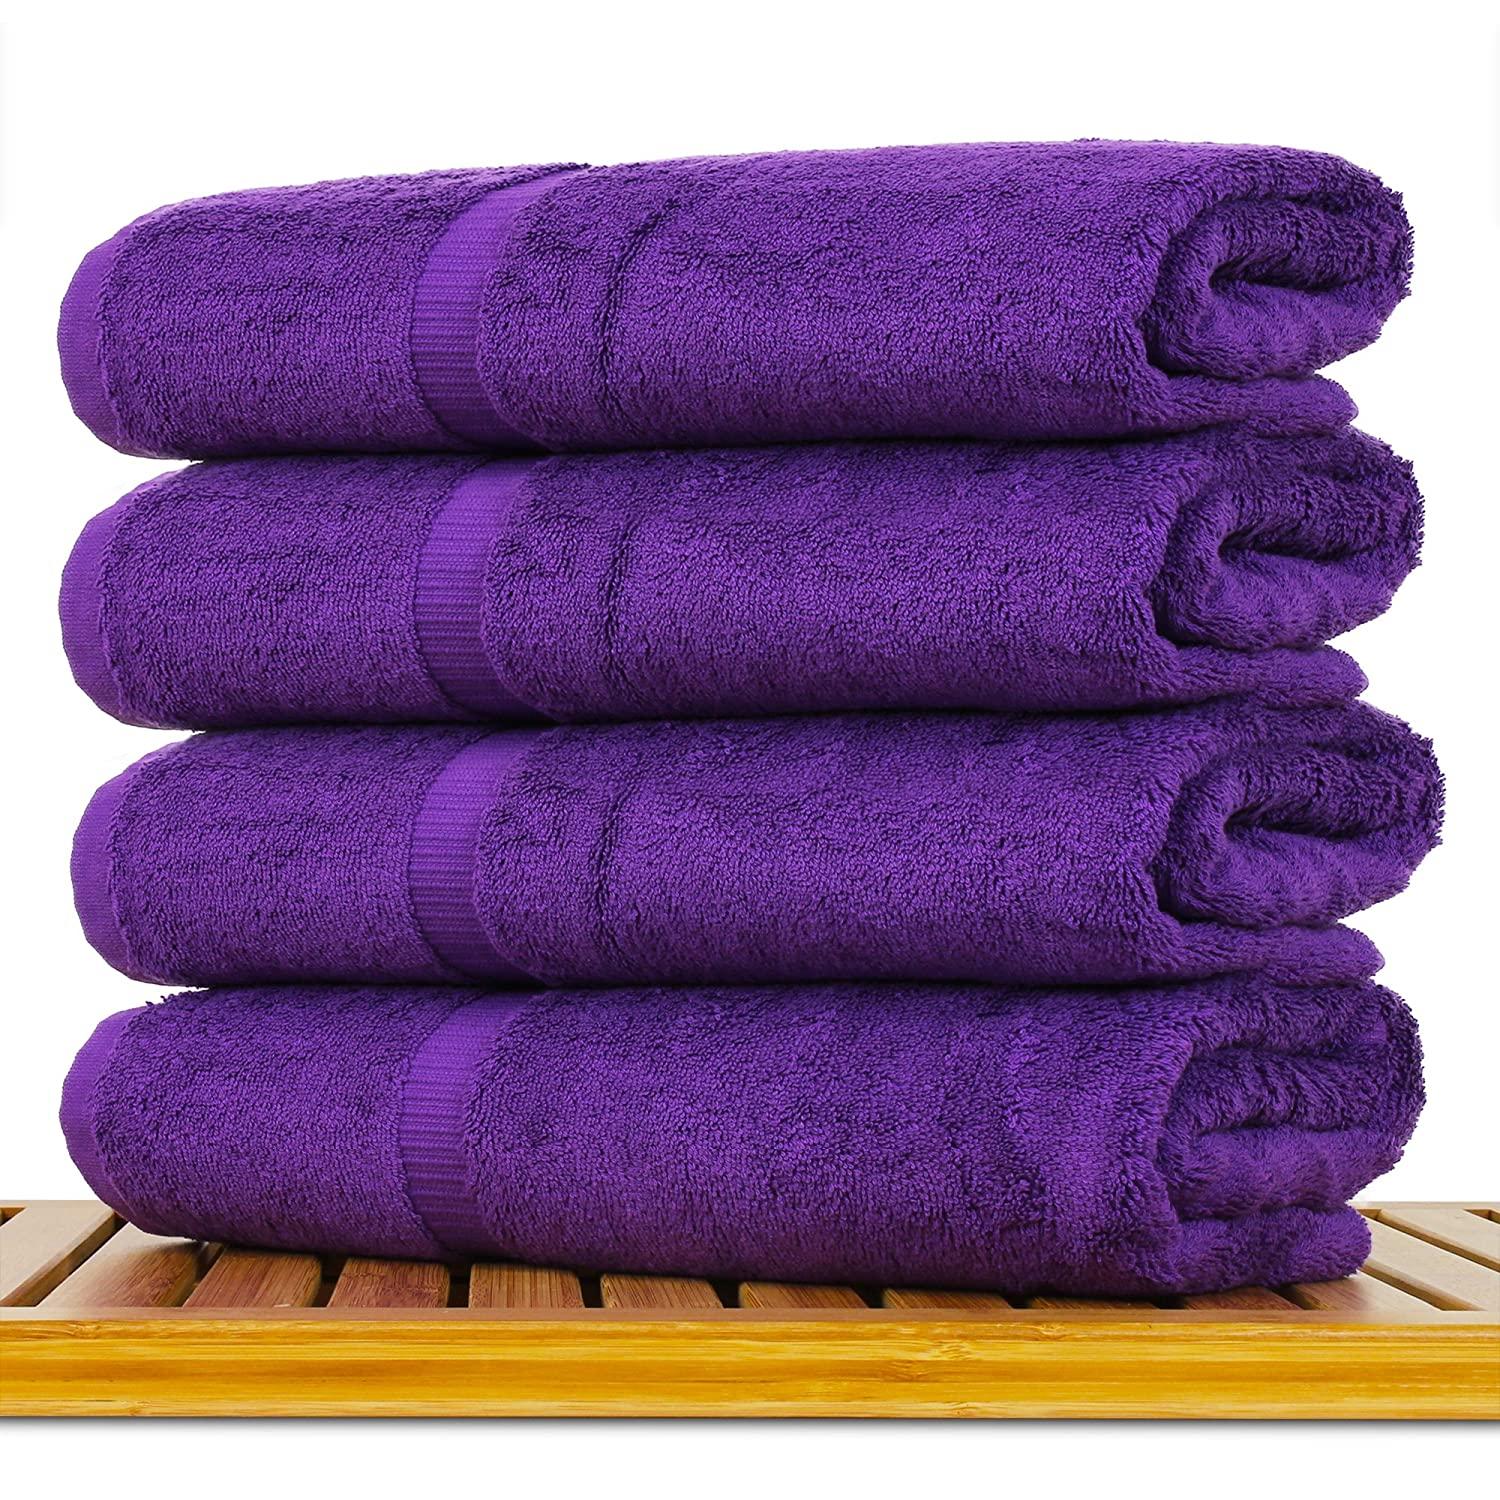 Luxury Hotel & Spa Towel Turkish Cotton Bath Towels - Eggplant - Dobby Border - Set of 4 4.3 out of 5 stars